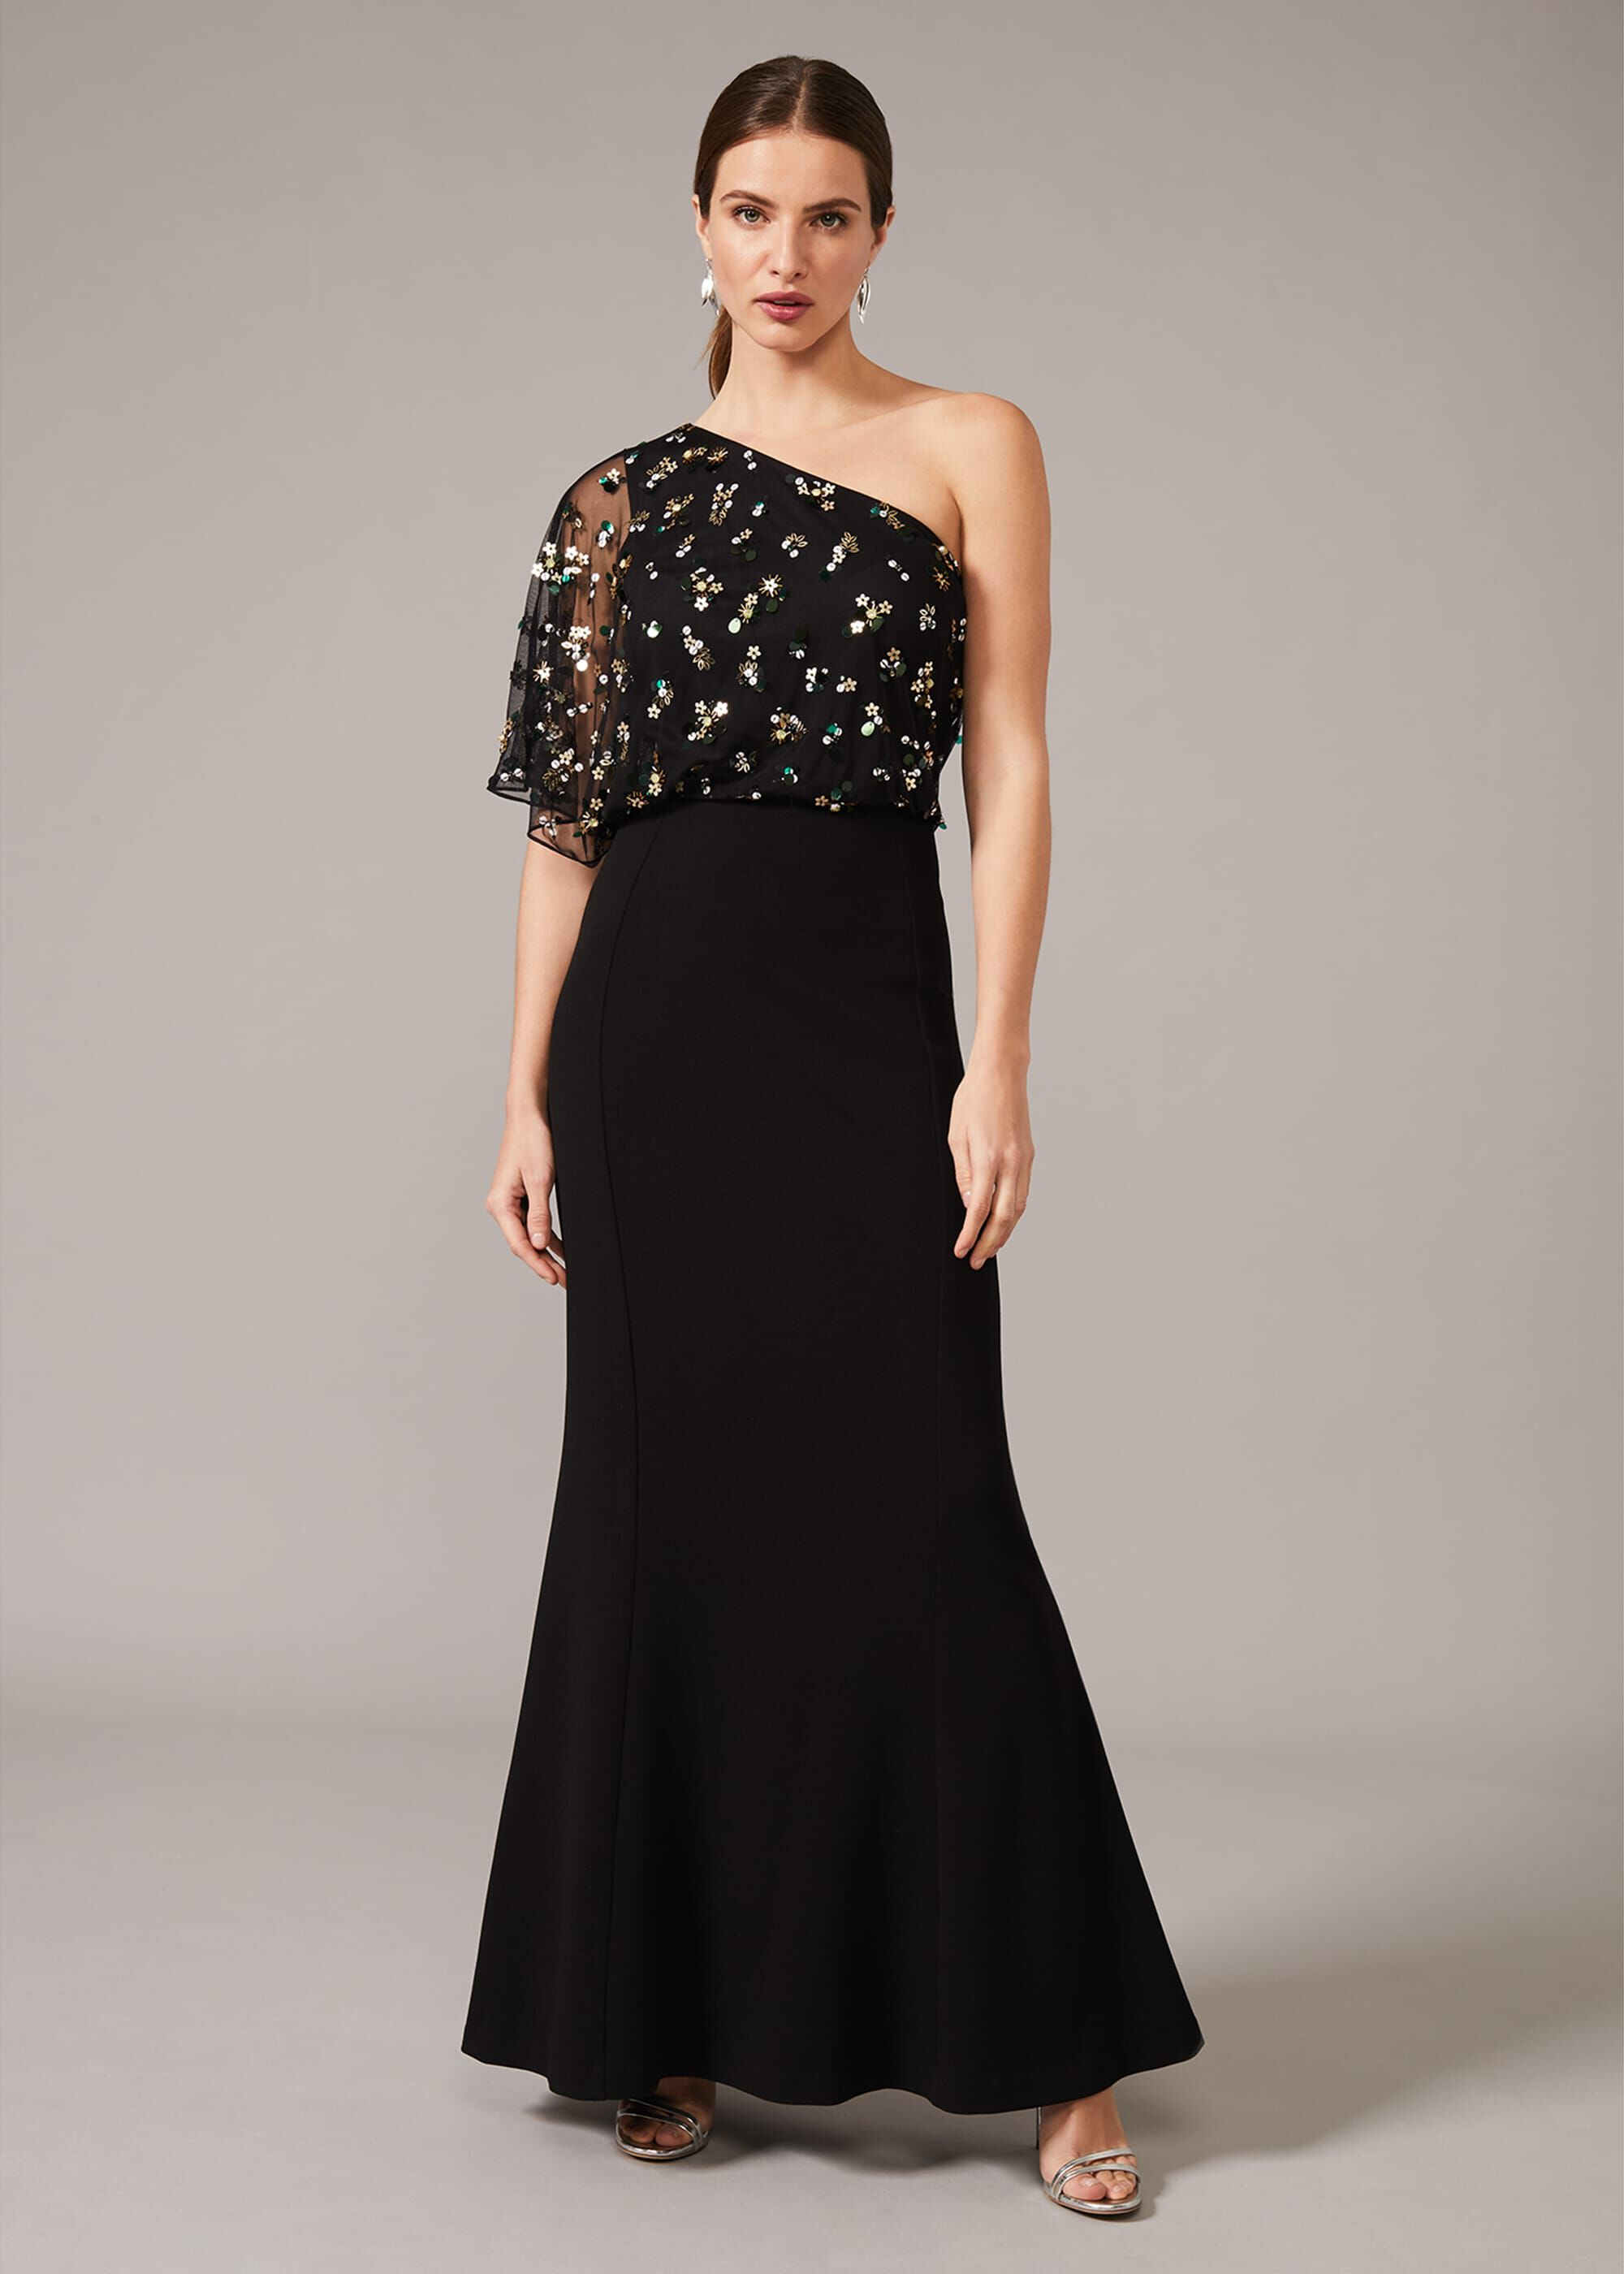 Phase Eight Adele Sequinned One Shoulder Dress, Black, Occasion Dress